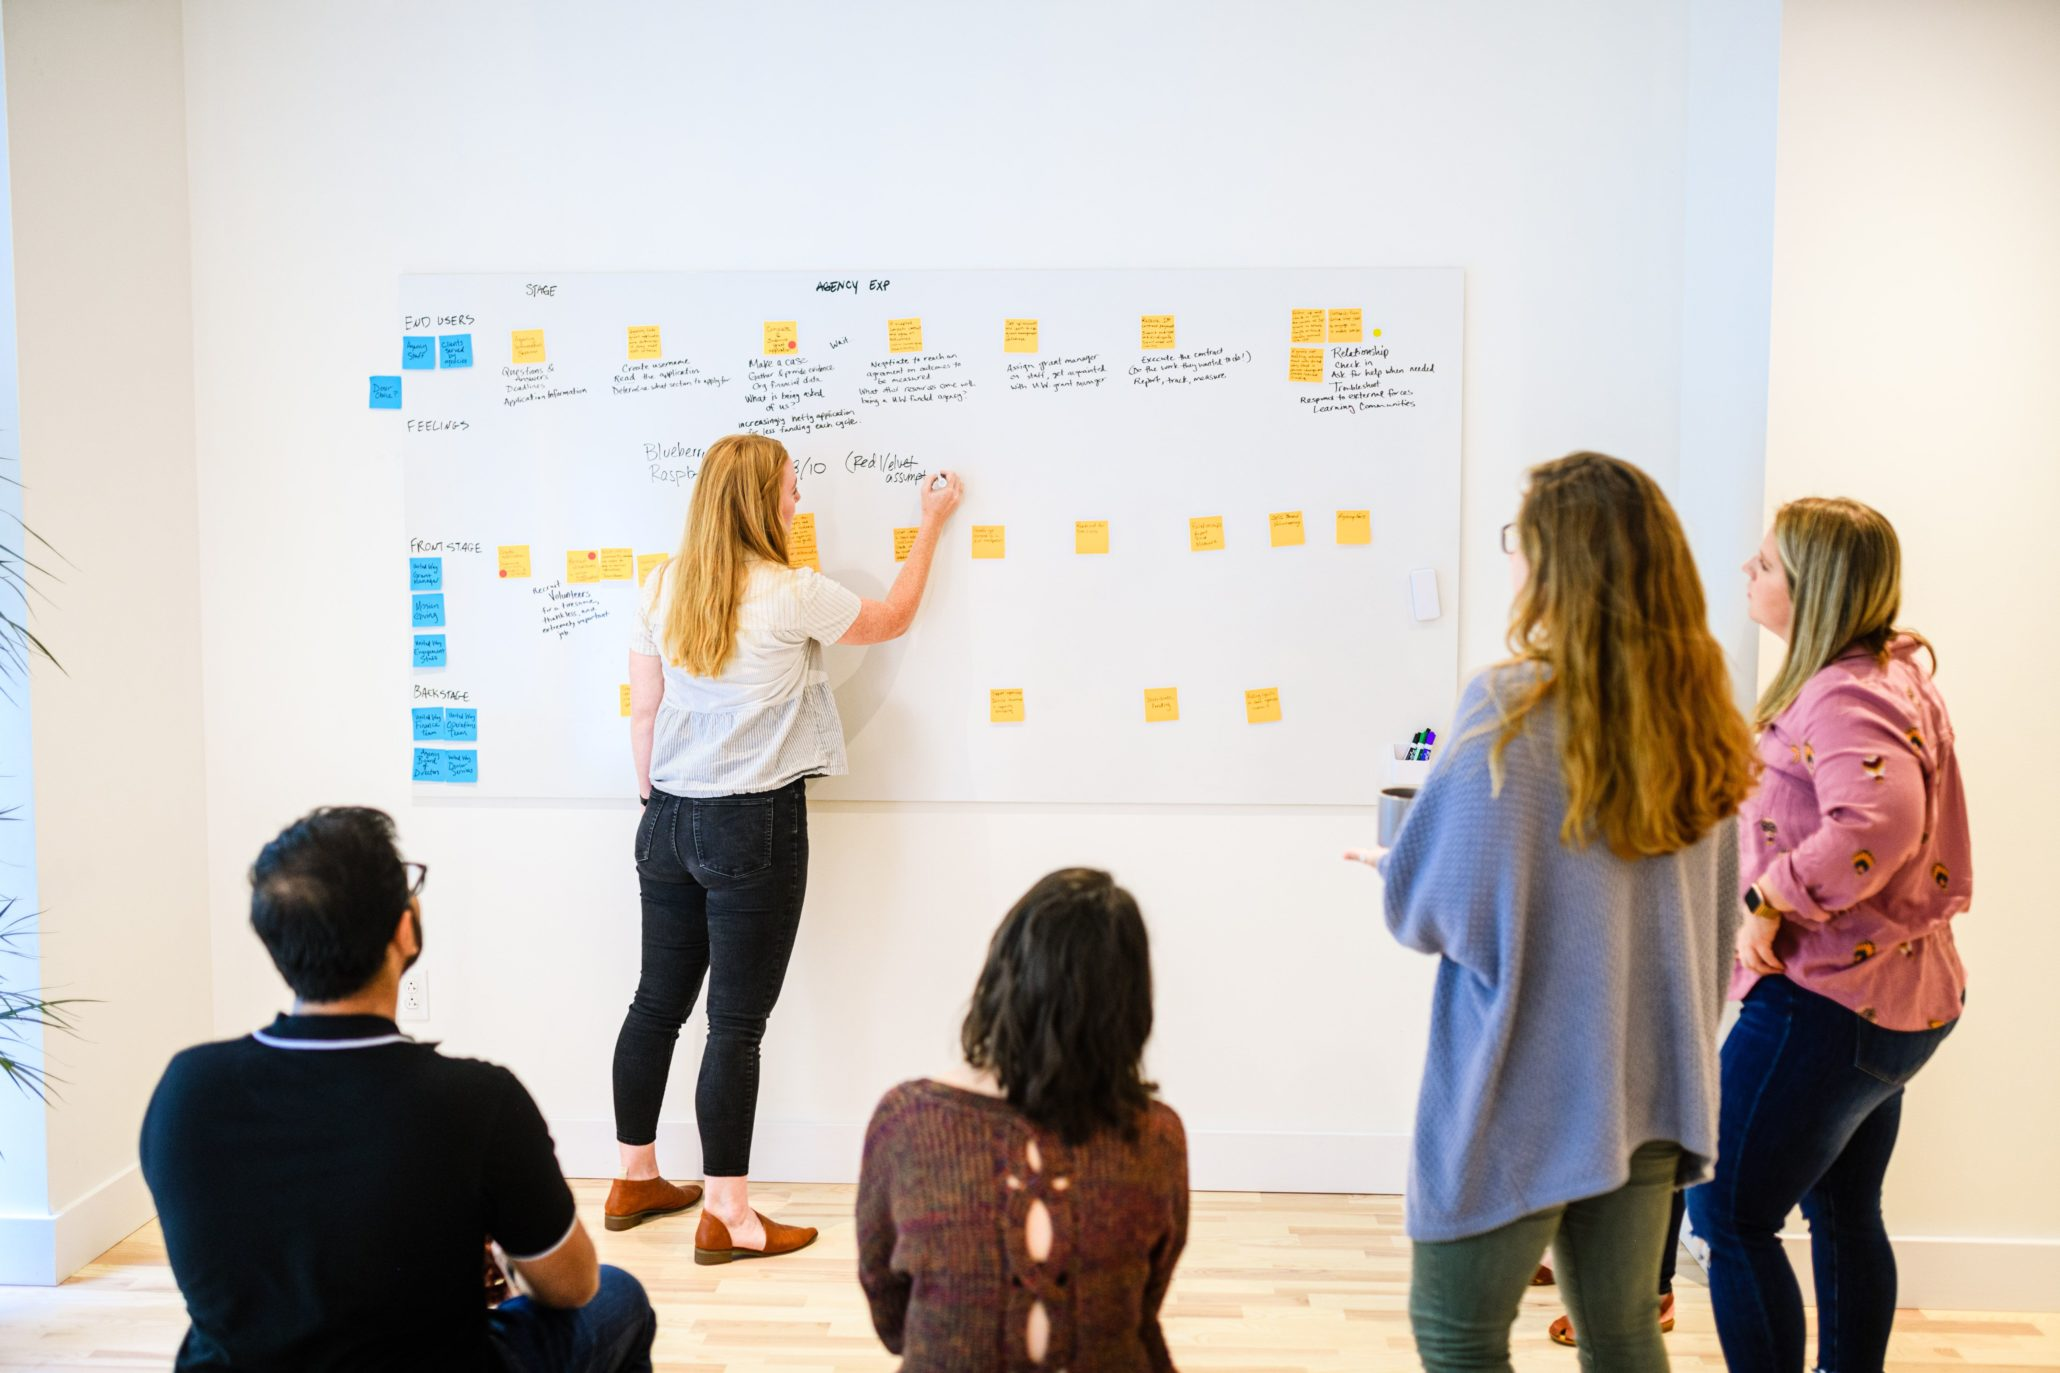 people brainstorming at a whiteboard